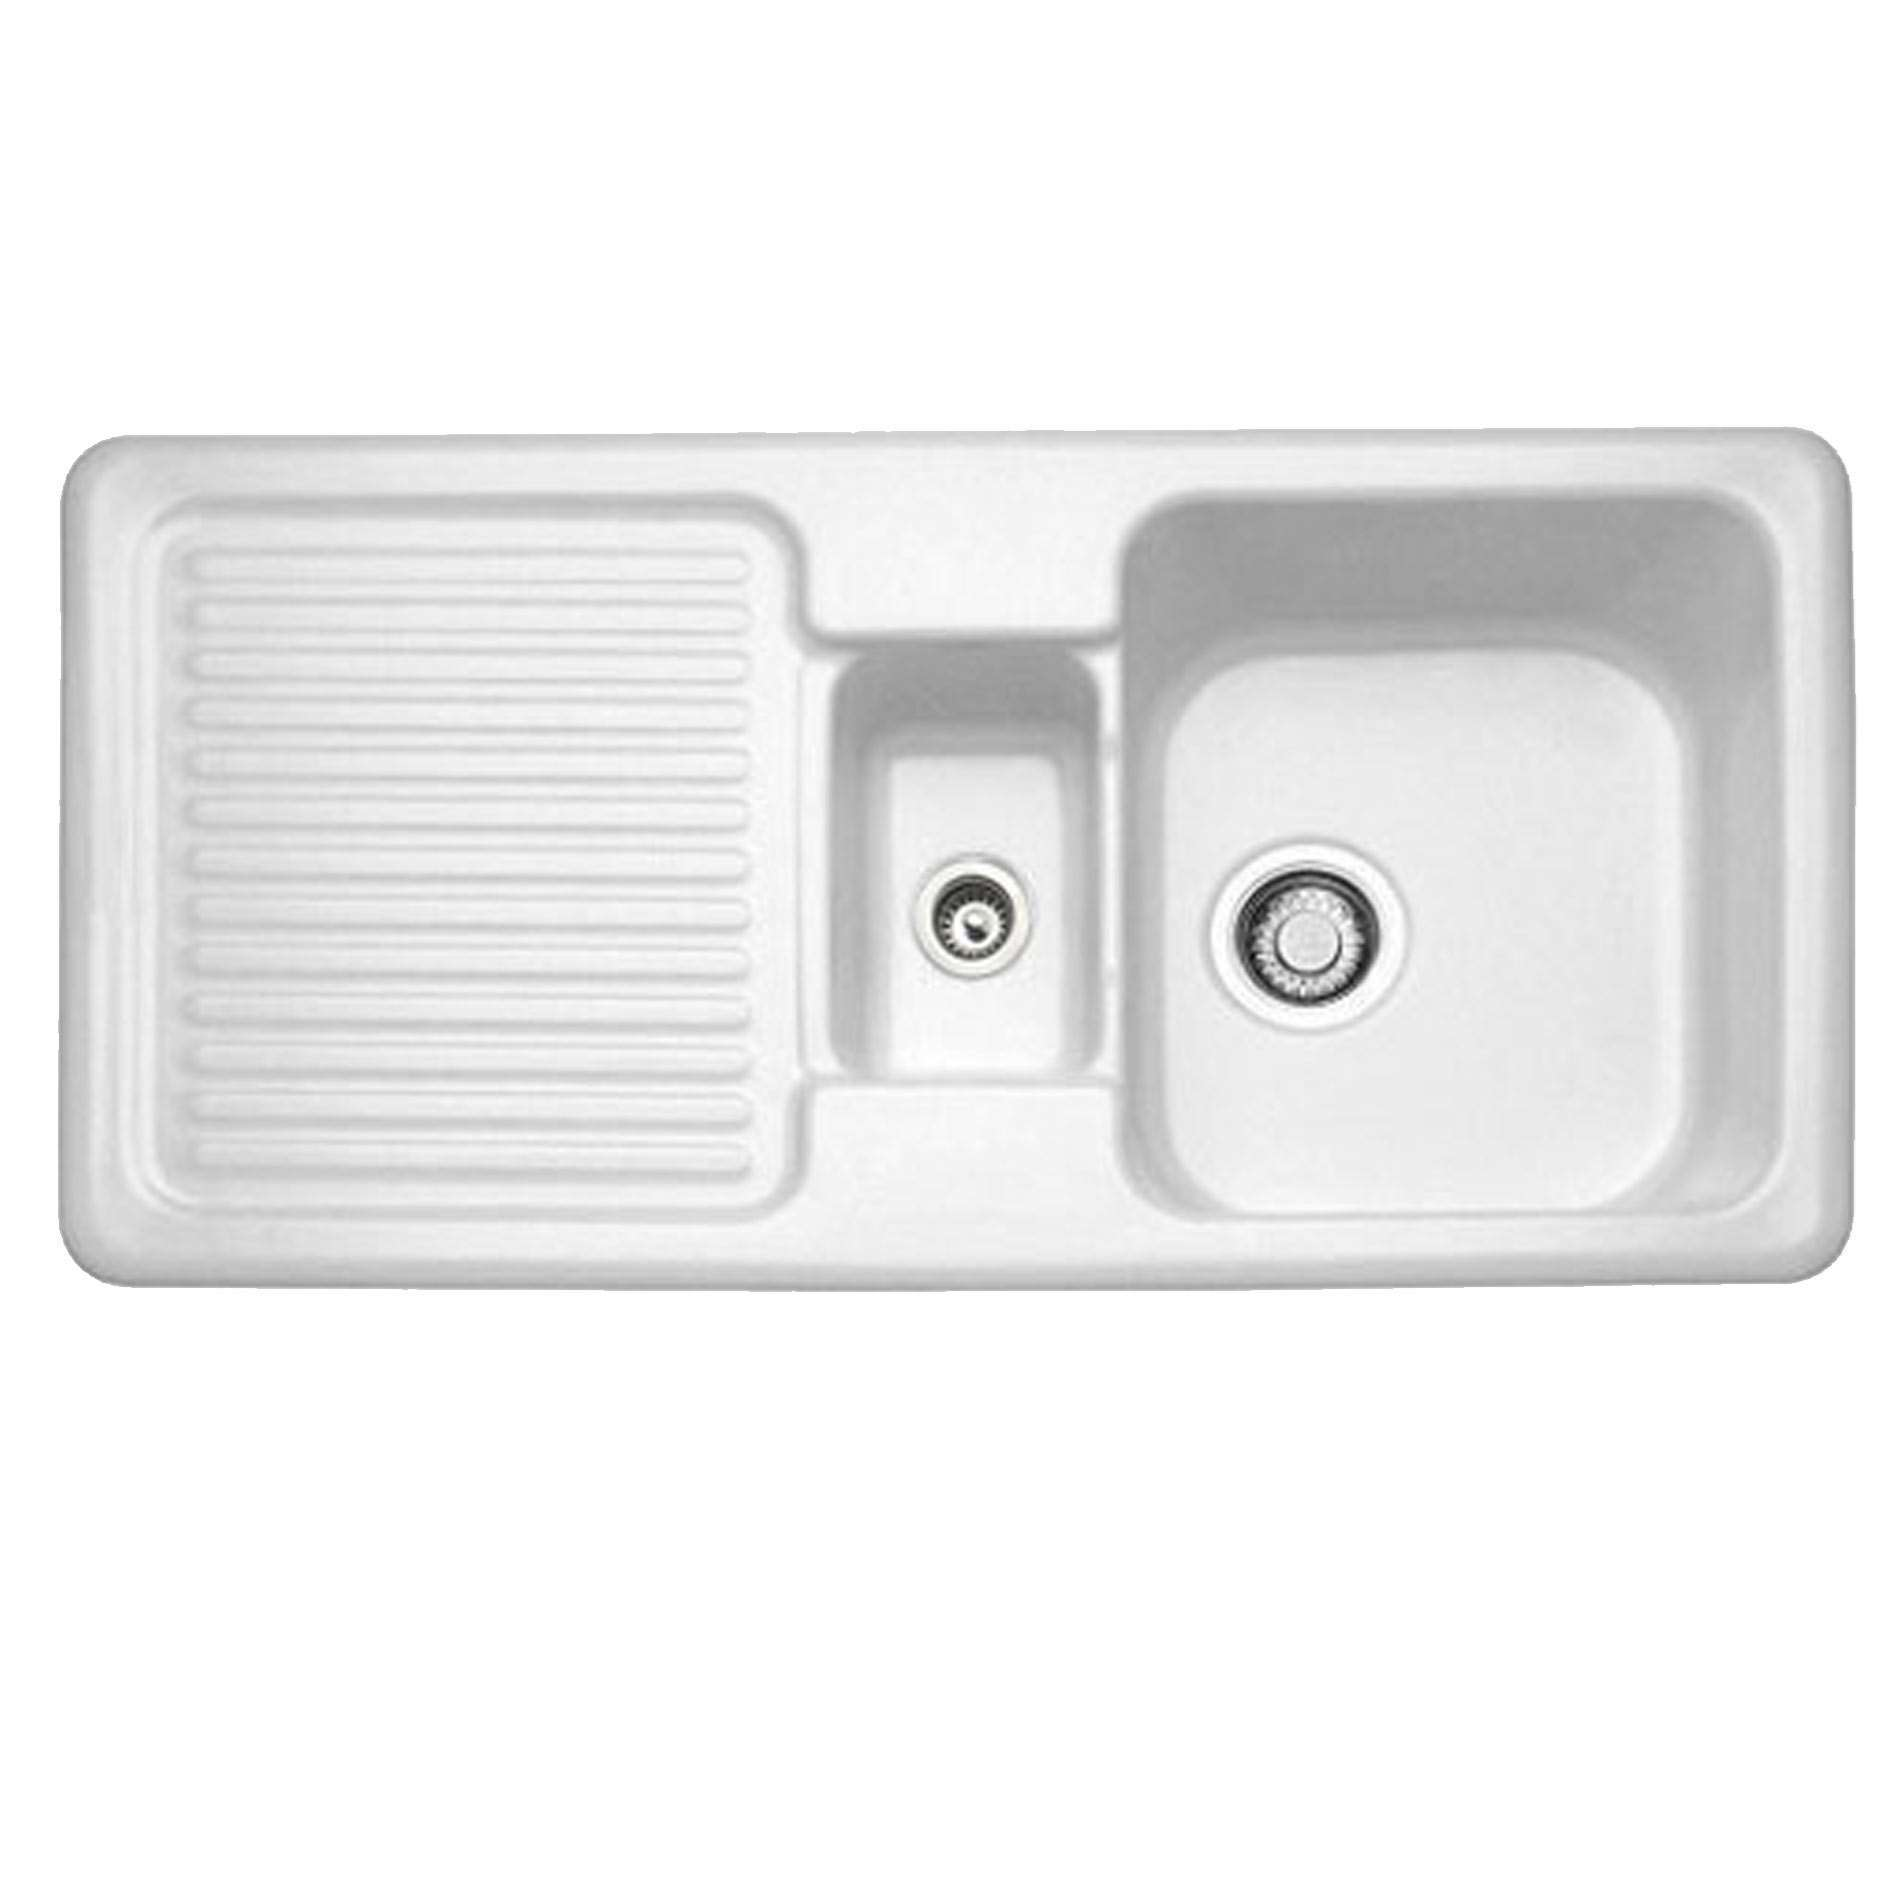 Villeroy boch condor 60 ceramic sink kitchen sinks taps picture of condor 60 ceramic sink workwithnaturefo